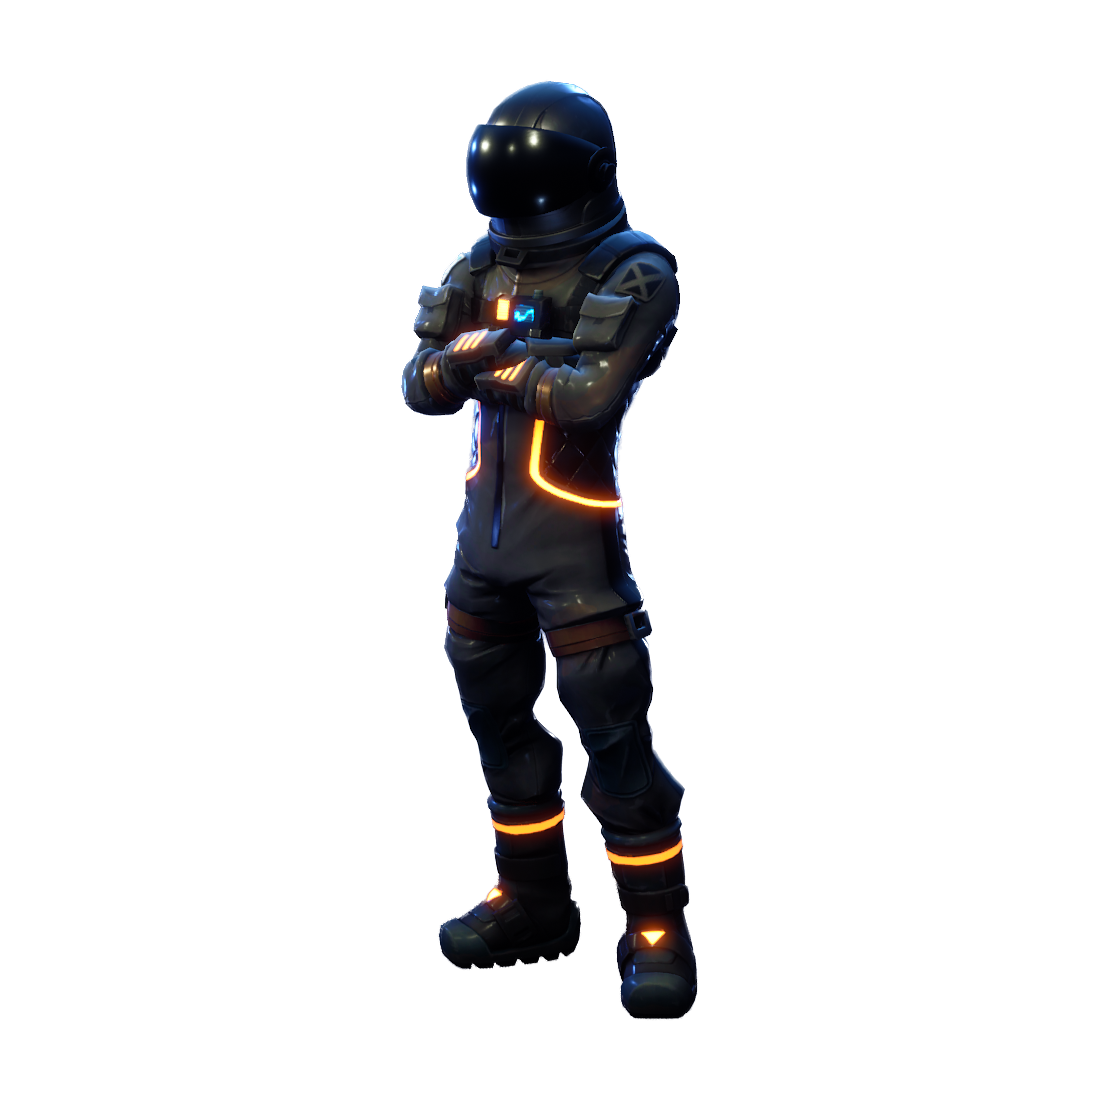 Voyager Fortnite Battle Game Free Download Fortnite Png Images